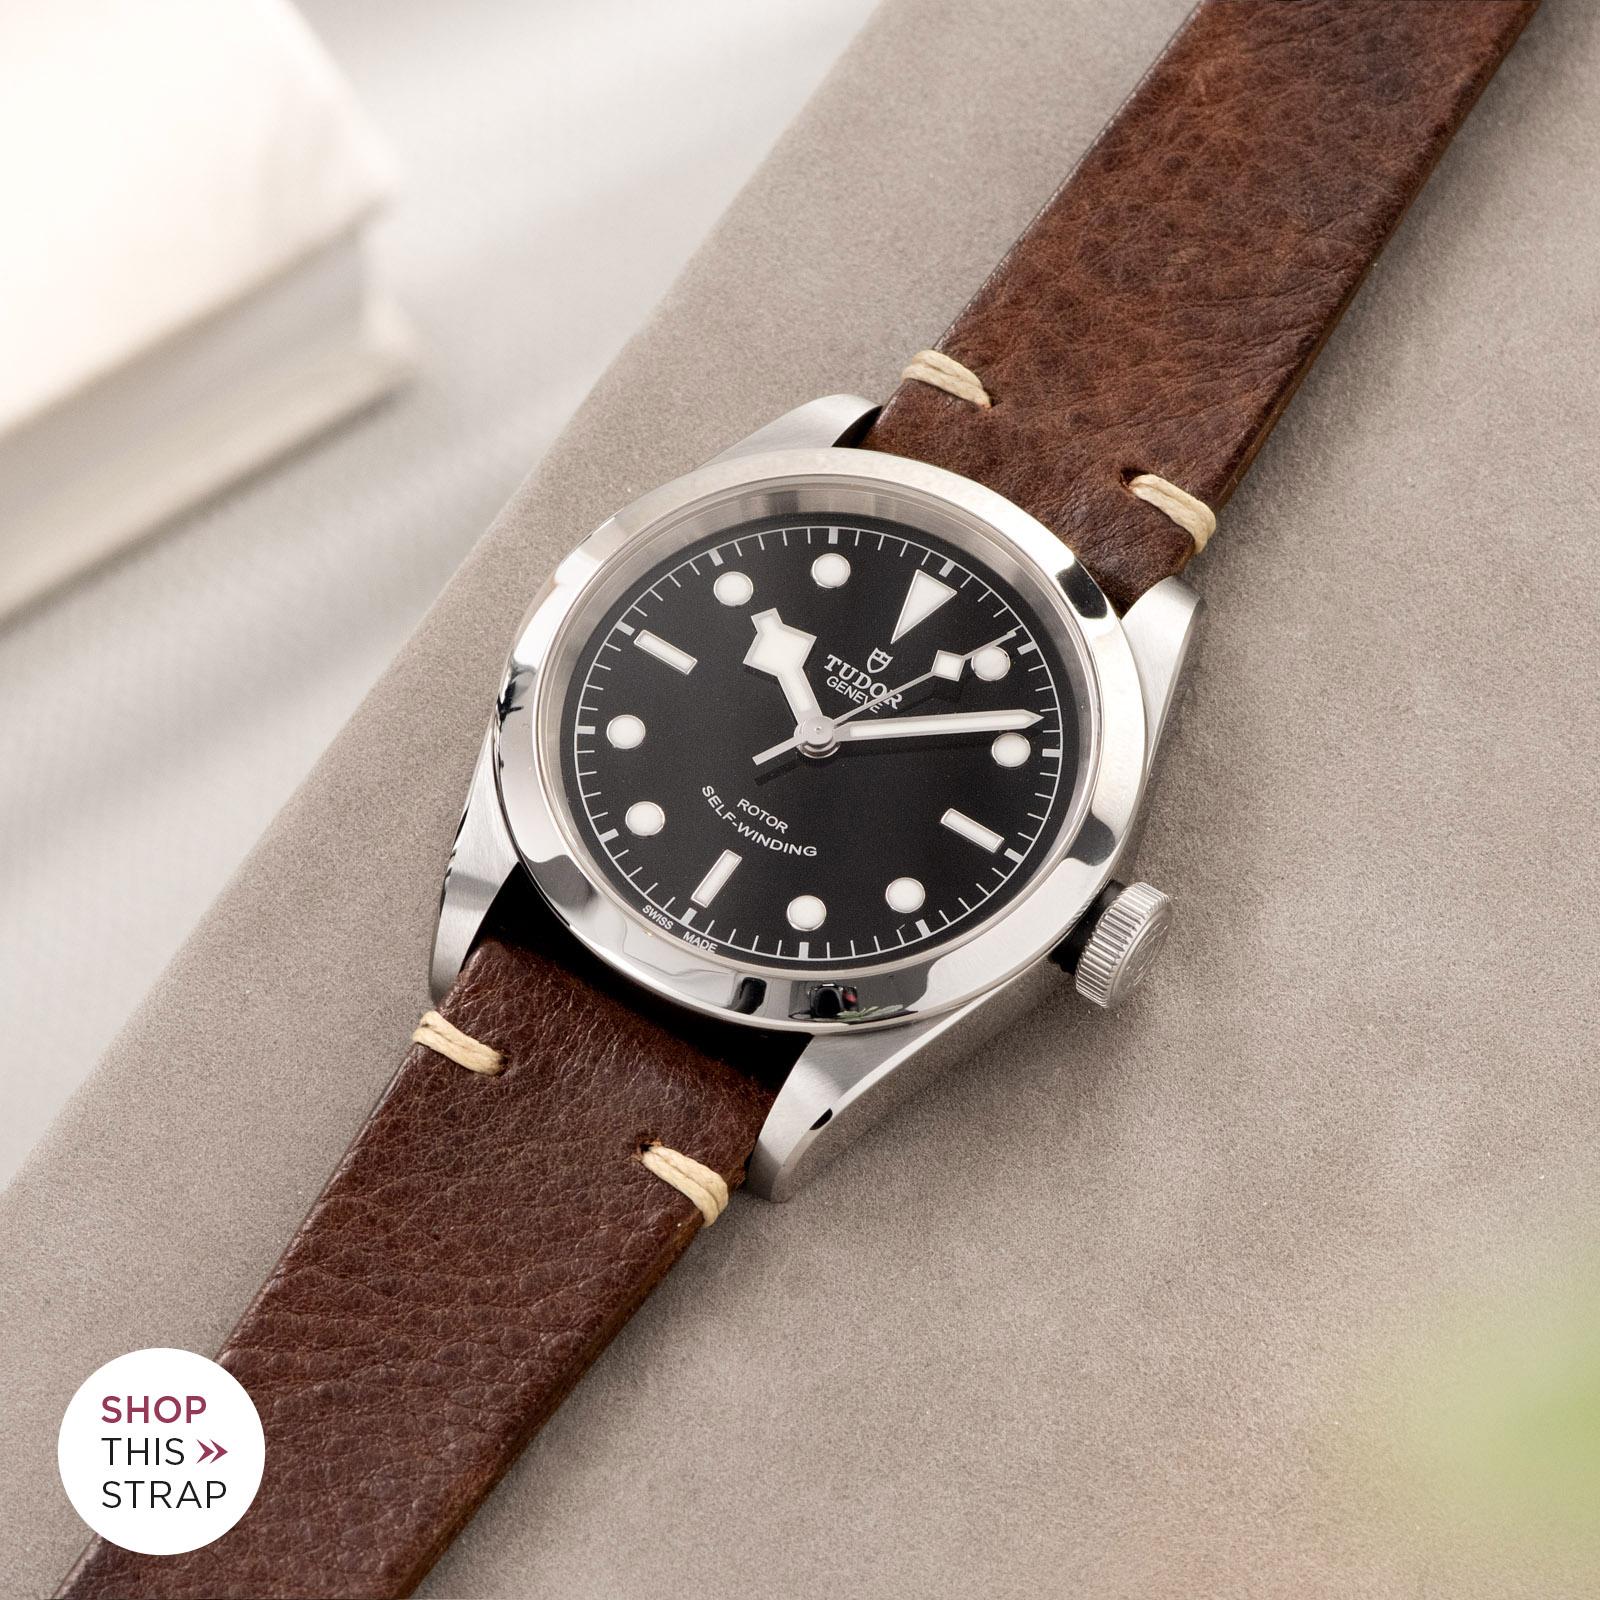 Bulang and Sons_Strap Guide_Tudor Heritage BlackBay 411_Lumberjack Brown Leather Watch Strap